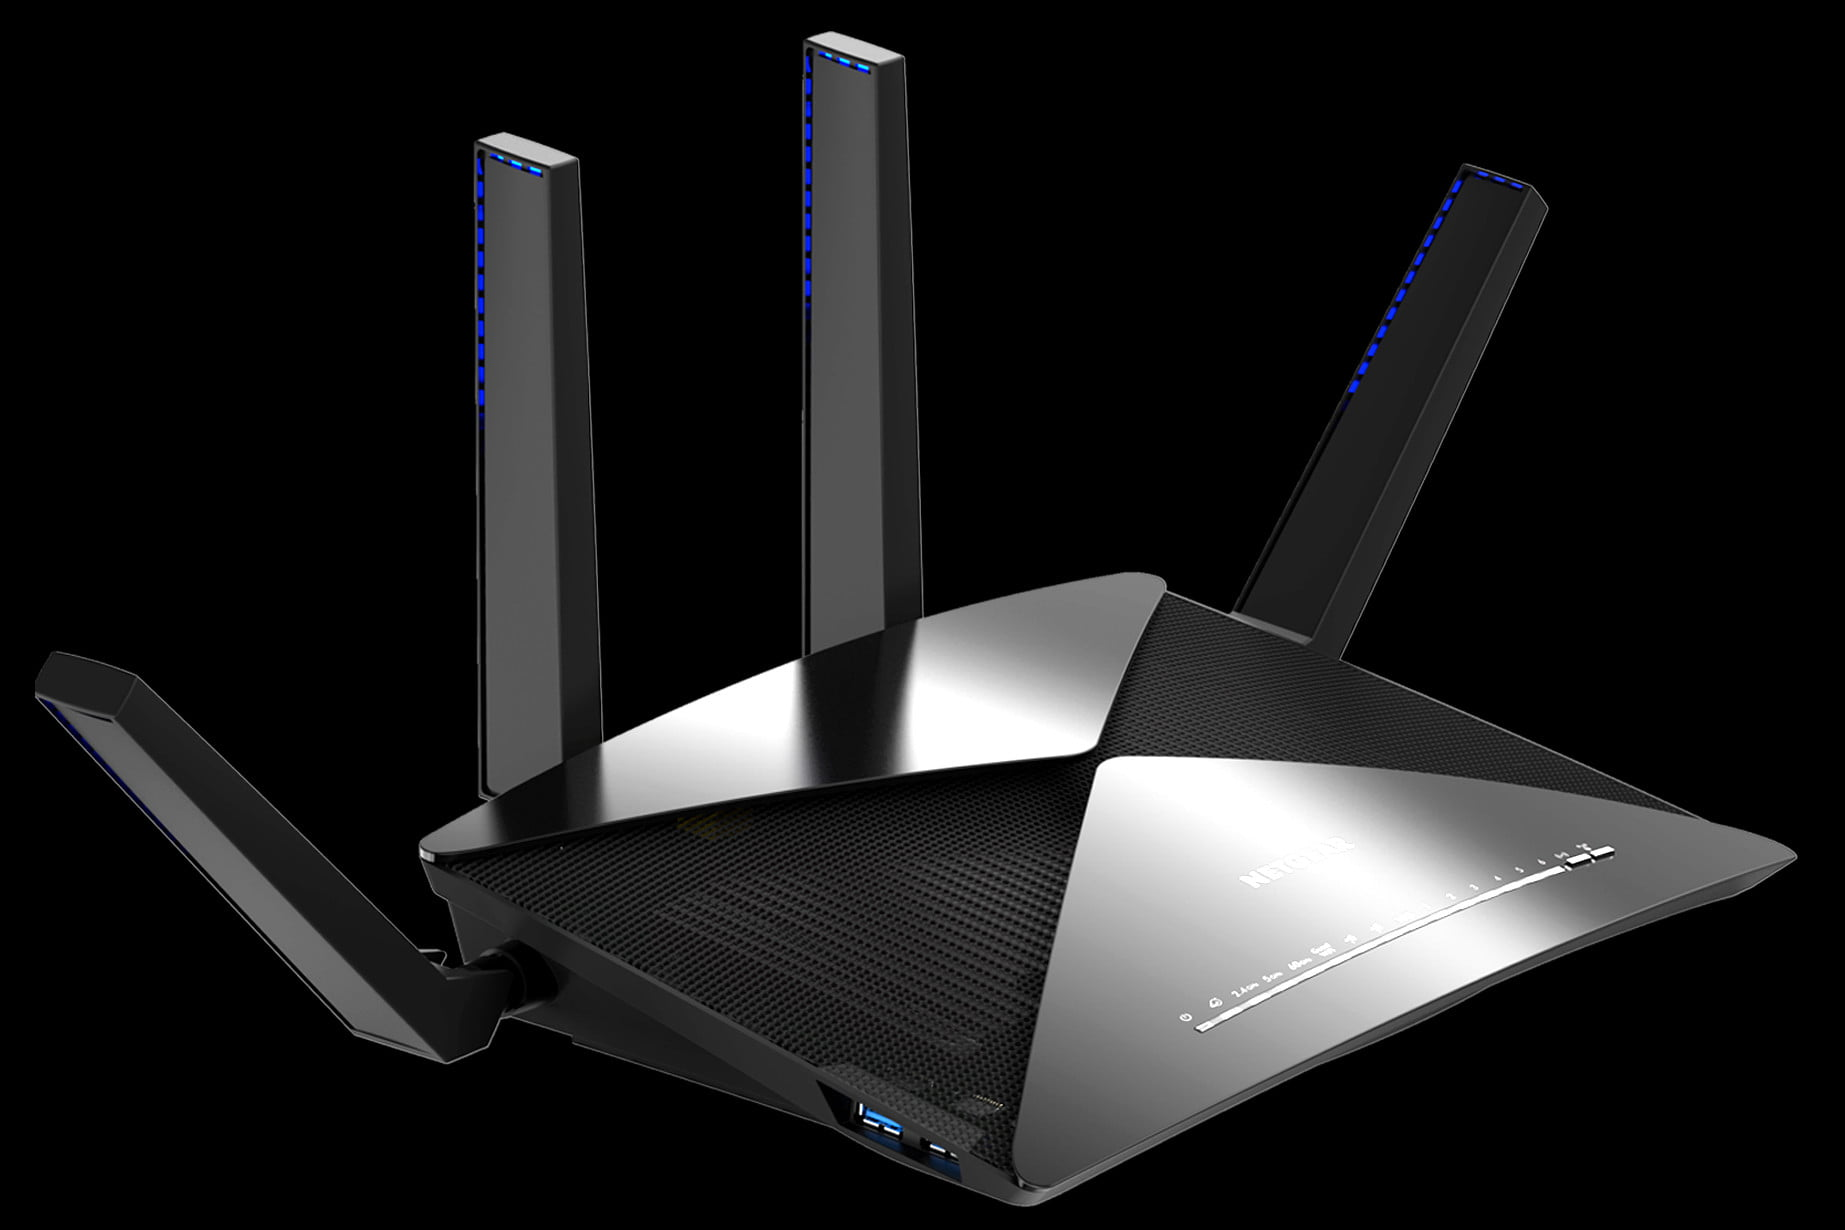 No Wireless AC? Netgear Has A Wireless AD Router For You | Digital